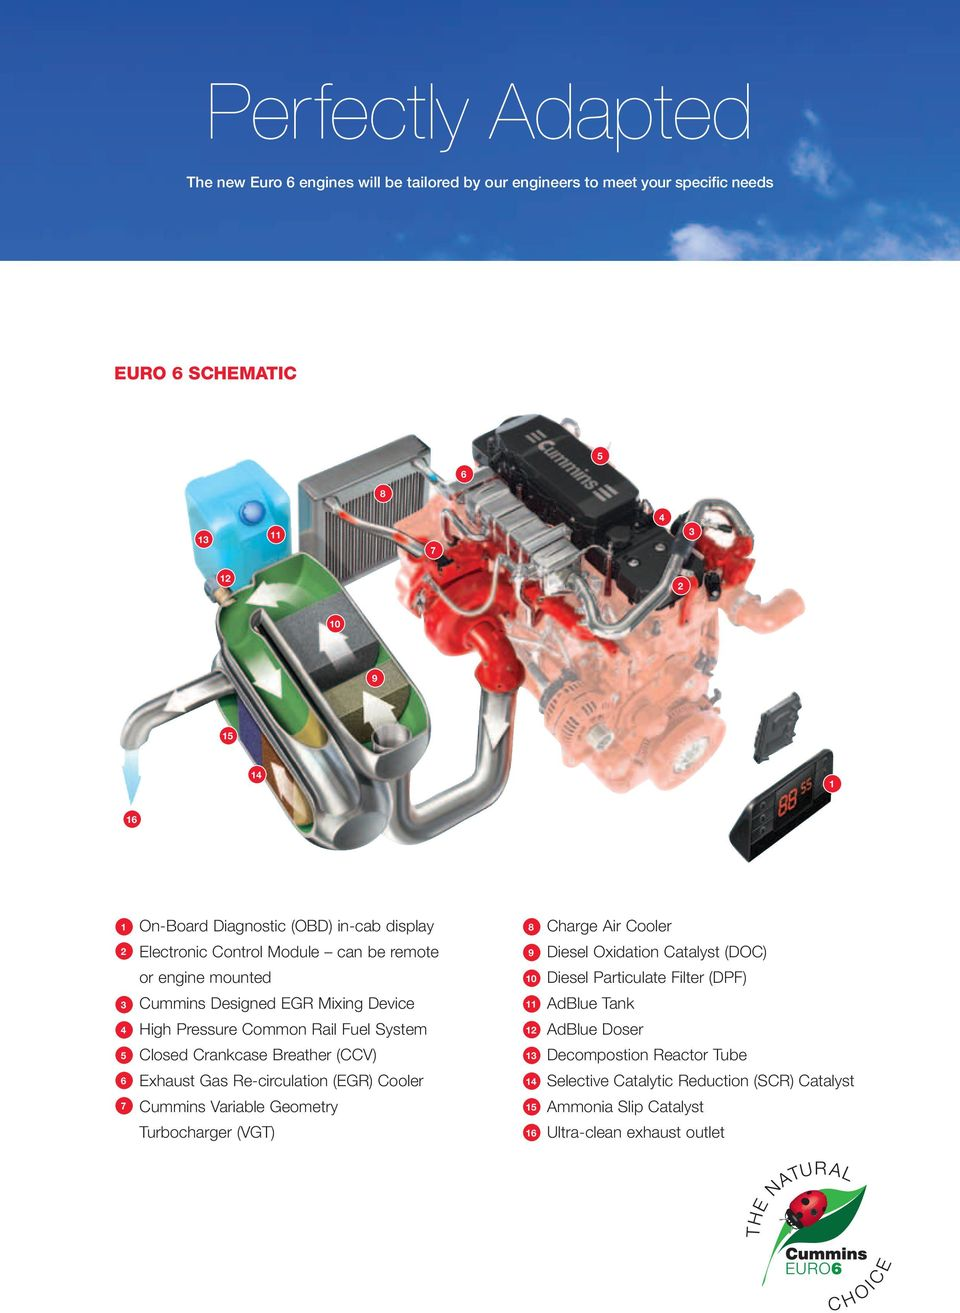 (DPF) 3 Cummins Designed EGR Mixing Device 11 AdBlue Tank 4 High Pressure Common Rail Fuel System 12 AdBlue Doser 5 Closed Crankcase Breather (CCV) 13 Decompostion Reactor Tube 6